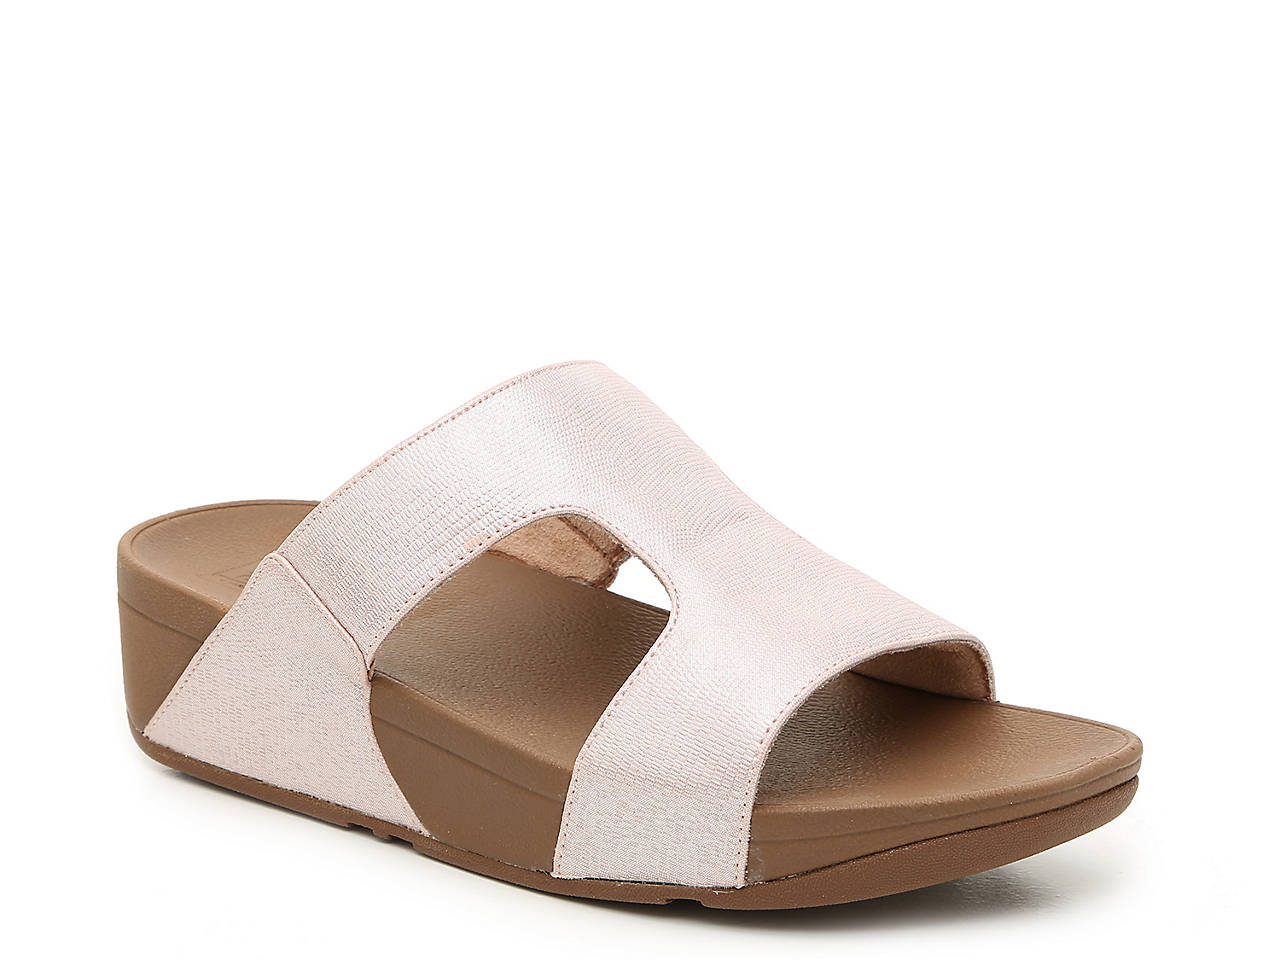 5e64287ae FitFlop H-Bar Shimmer Wedge Sandal Women s Shoes